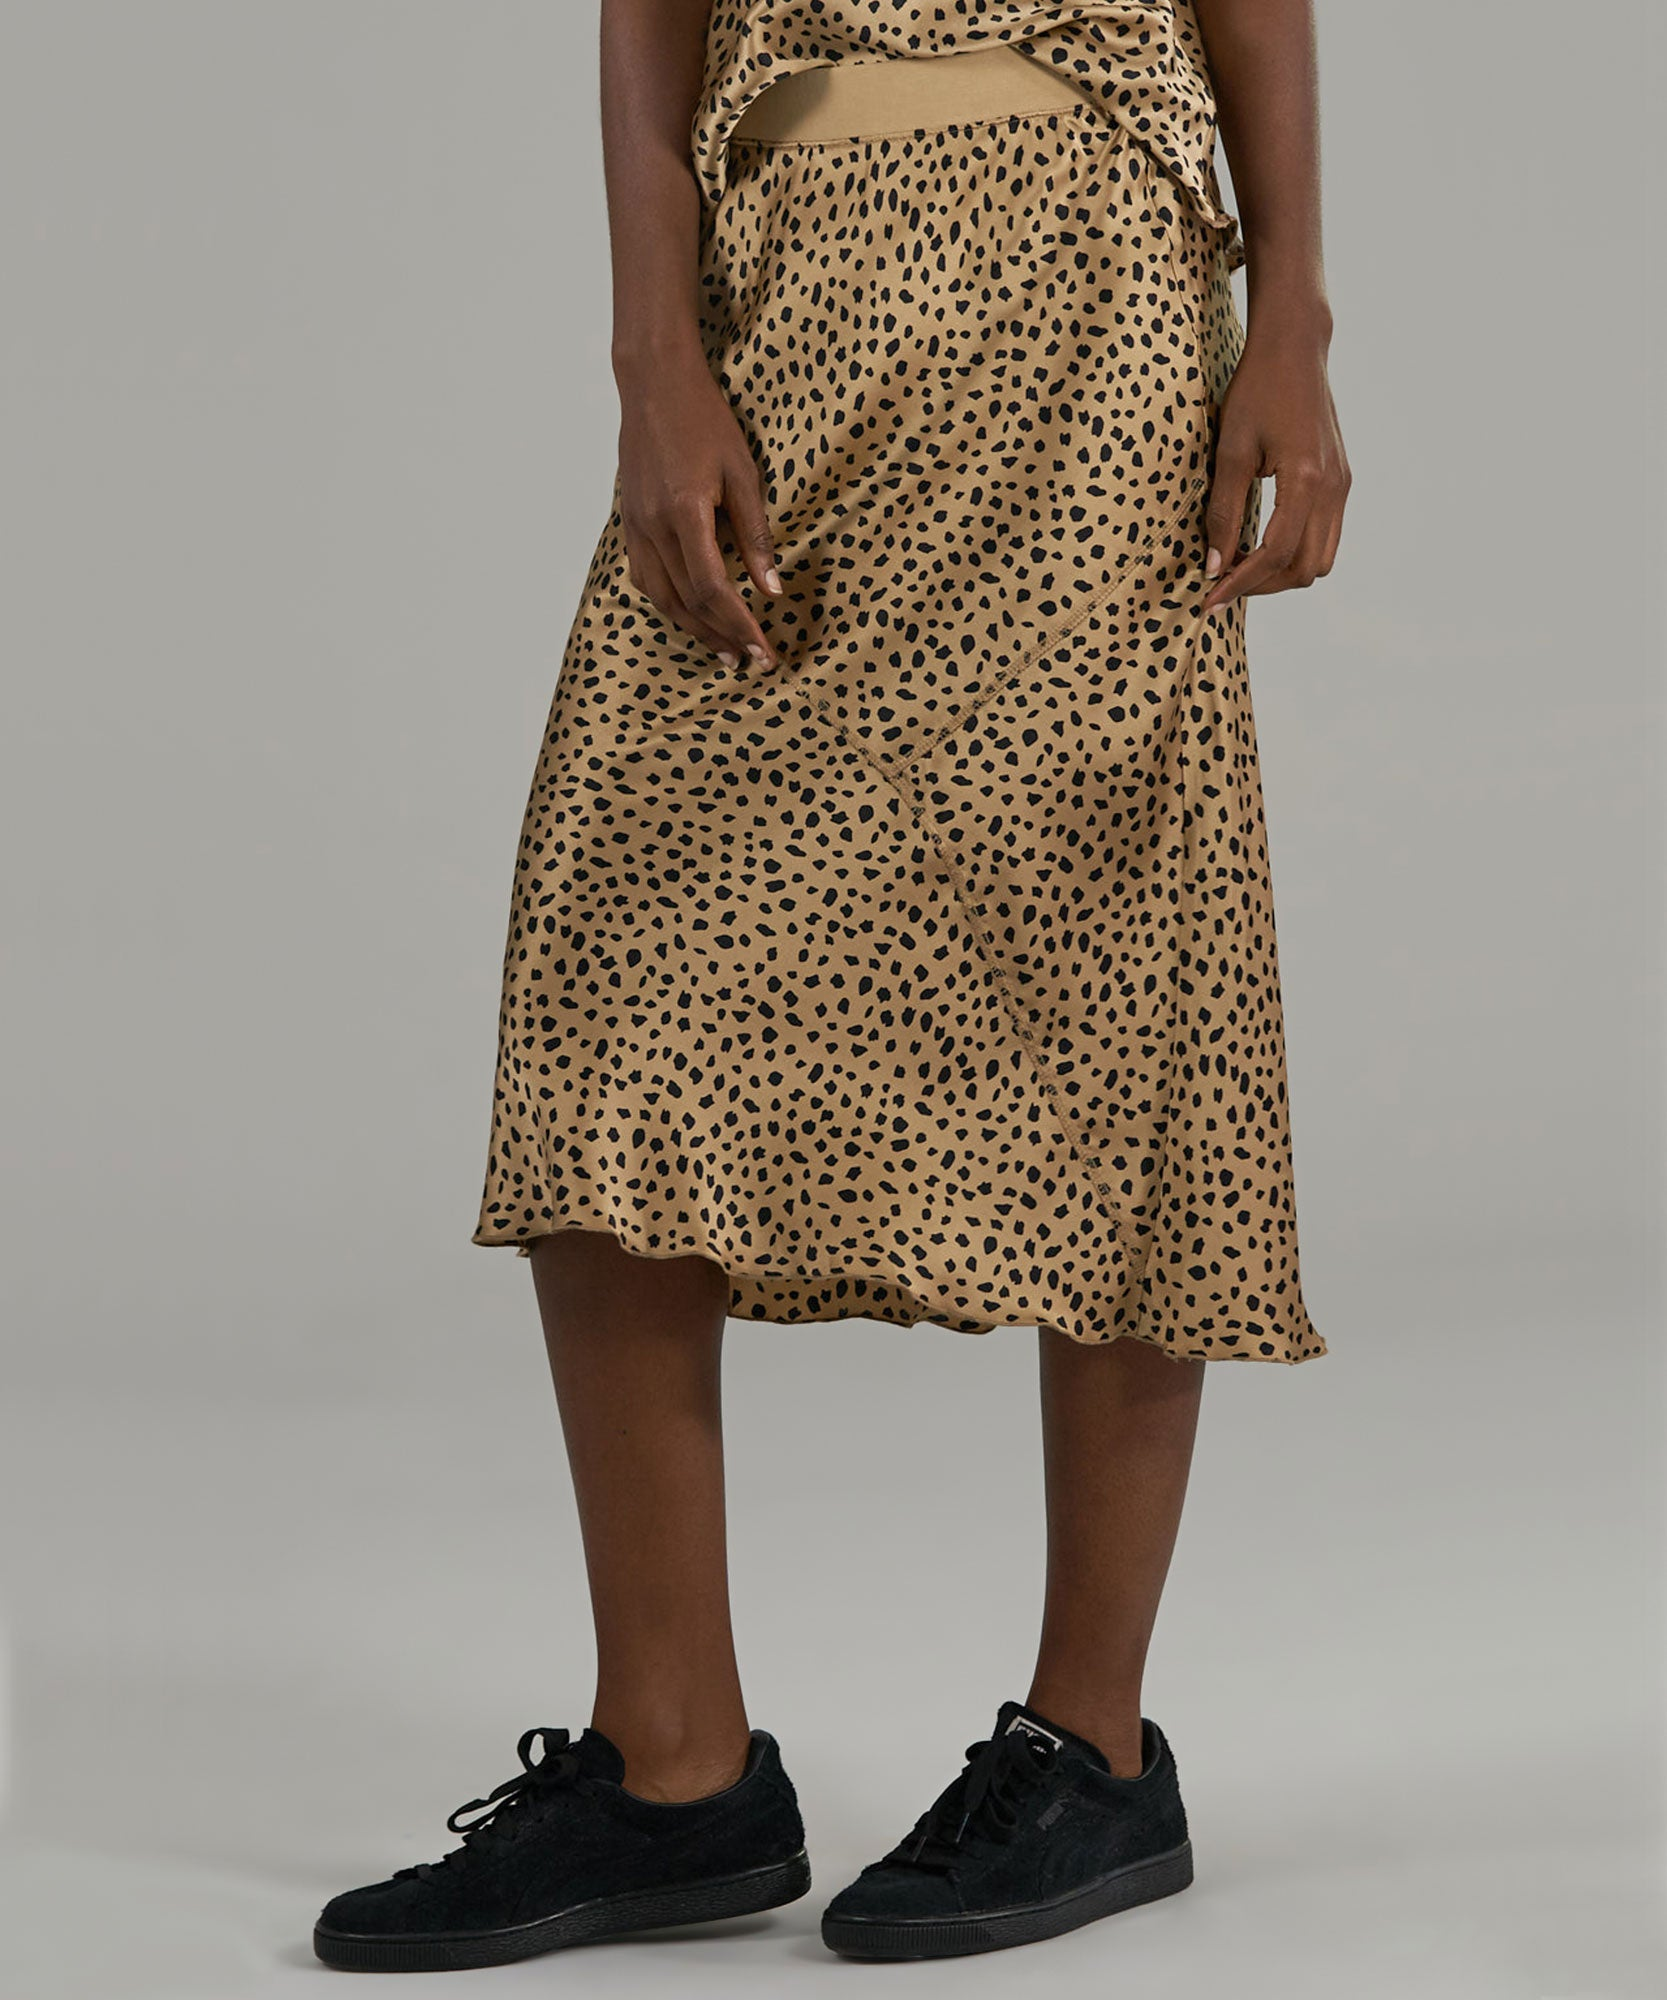 Camel/ Black Cheetah Silk Pull-On Skirt - Women's Skirt by ATM Anthony Thomas Melillo